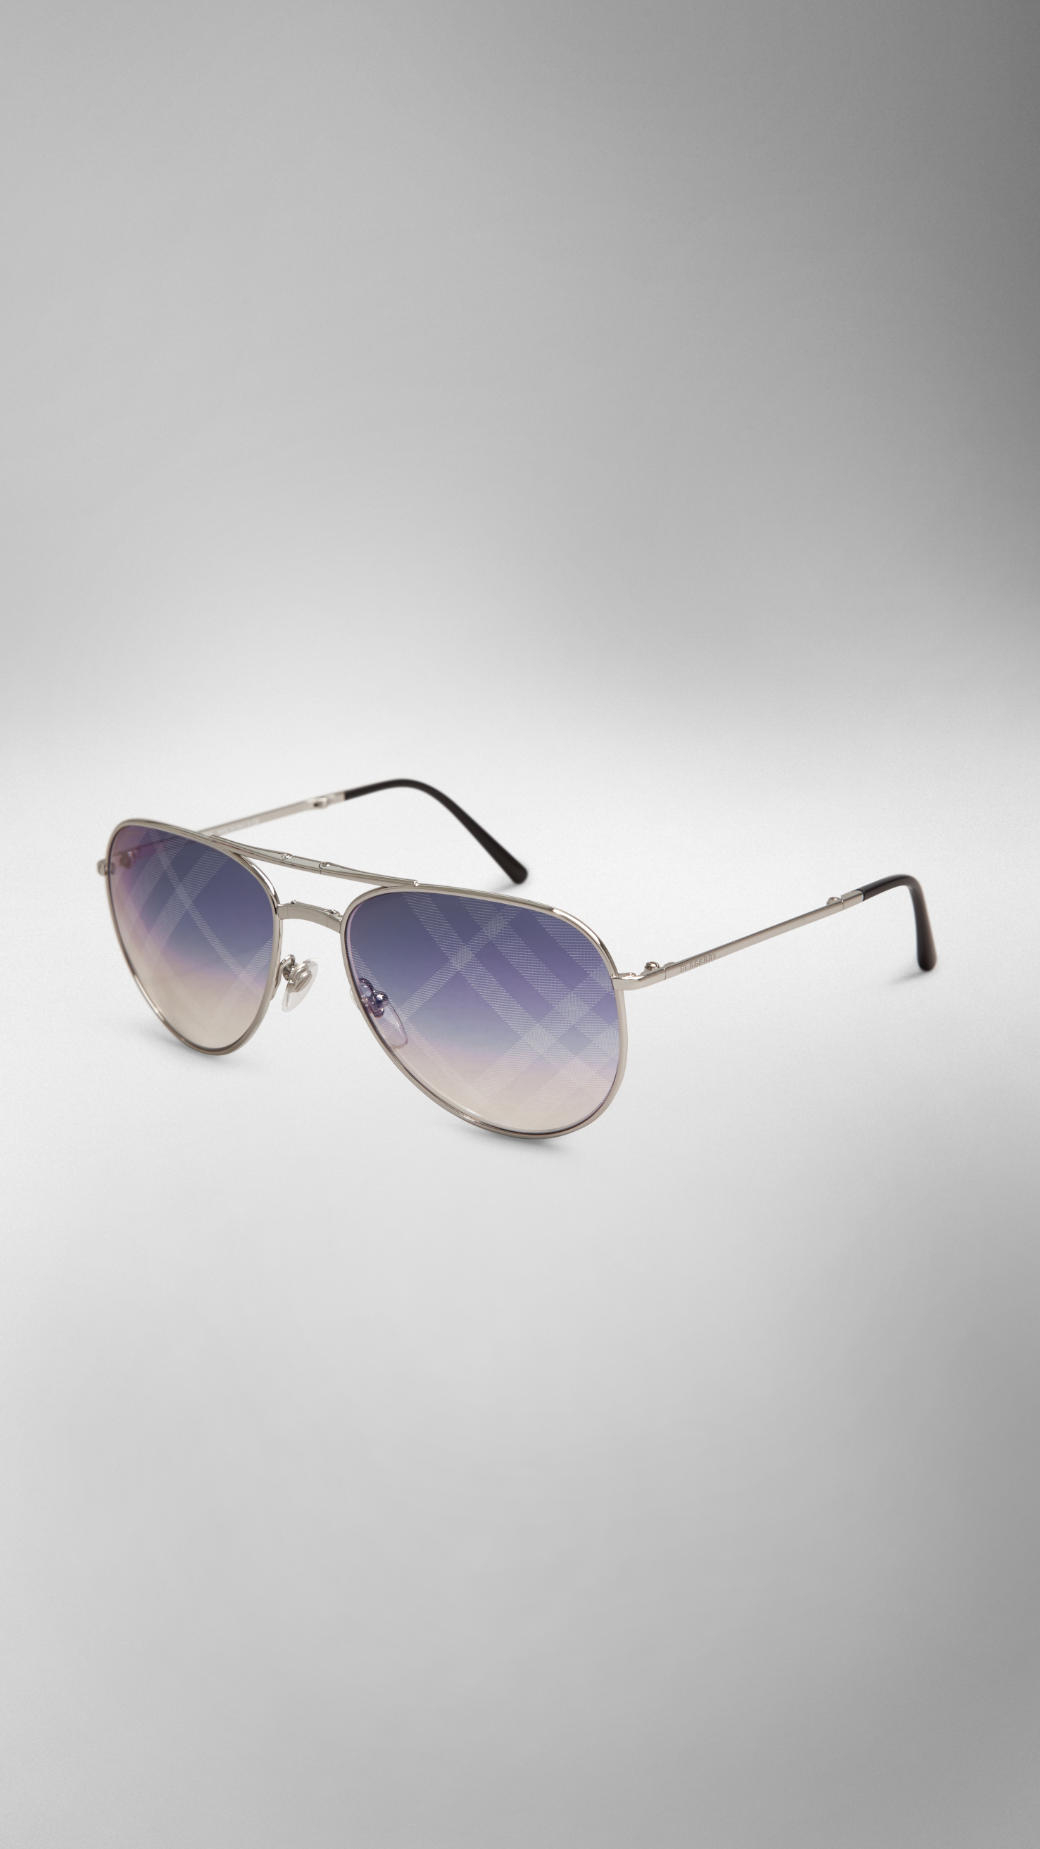 83c3a3f727ec Lyst - Burberry Foldable Aviator Sunglasses With Check Lenses in ...